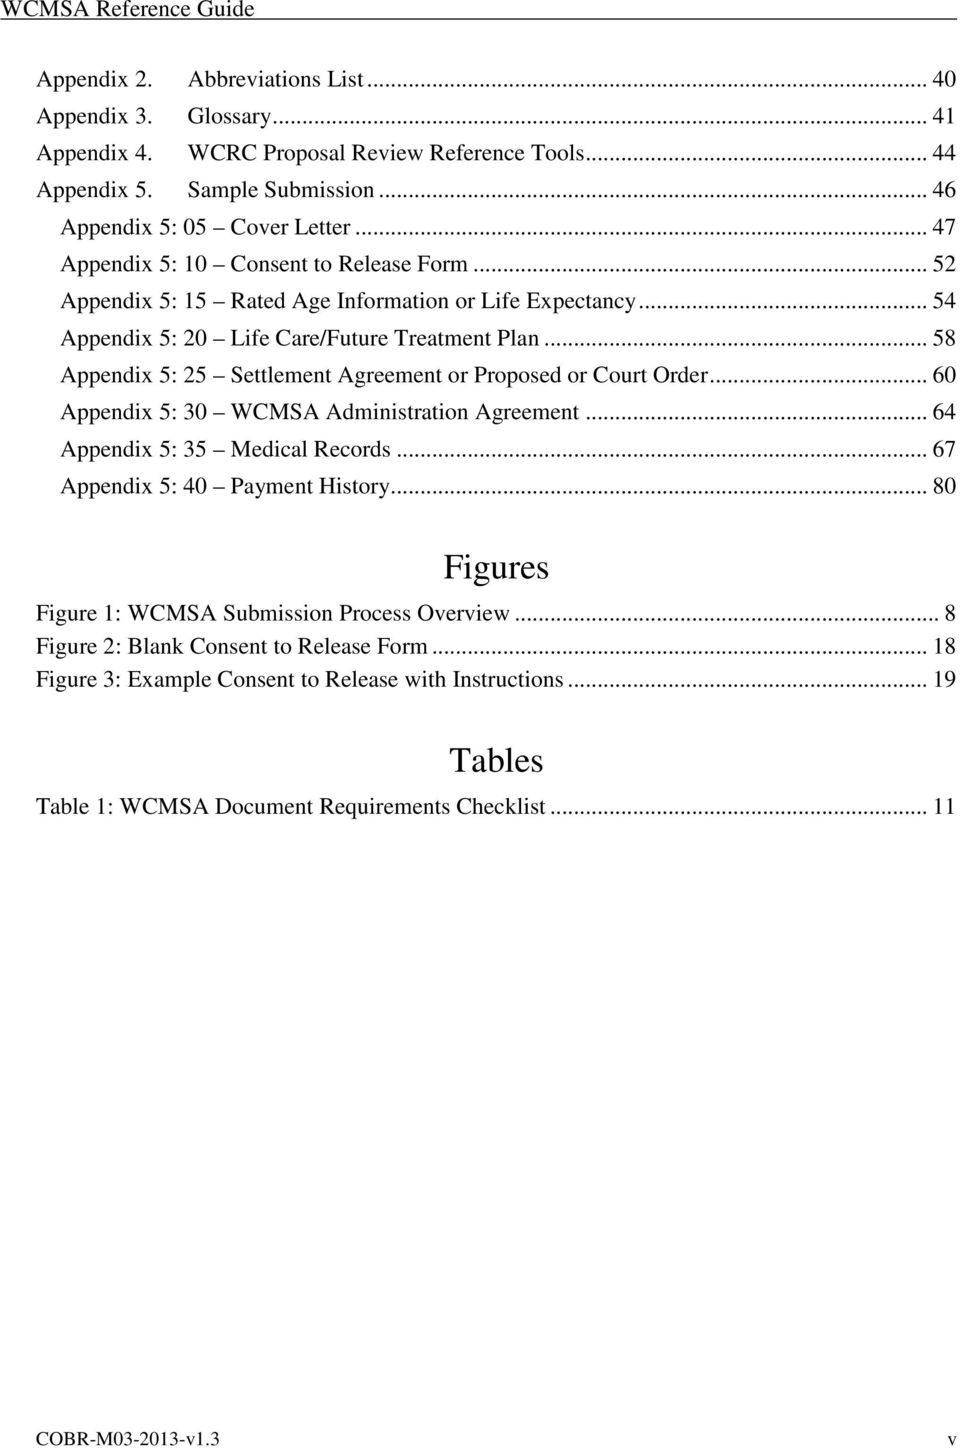 .. 58 Appendix 5: 25 Settlement Agreement or Proposed or Court Order... 60 Appendix 5: 30 WCMSA Administration Agreement... 64 Appendix 5: 35 Medical Records... 67 Appendix 5: 40 Payment History.